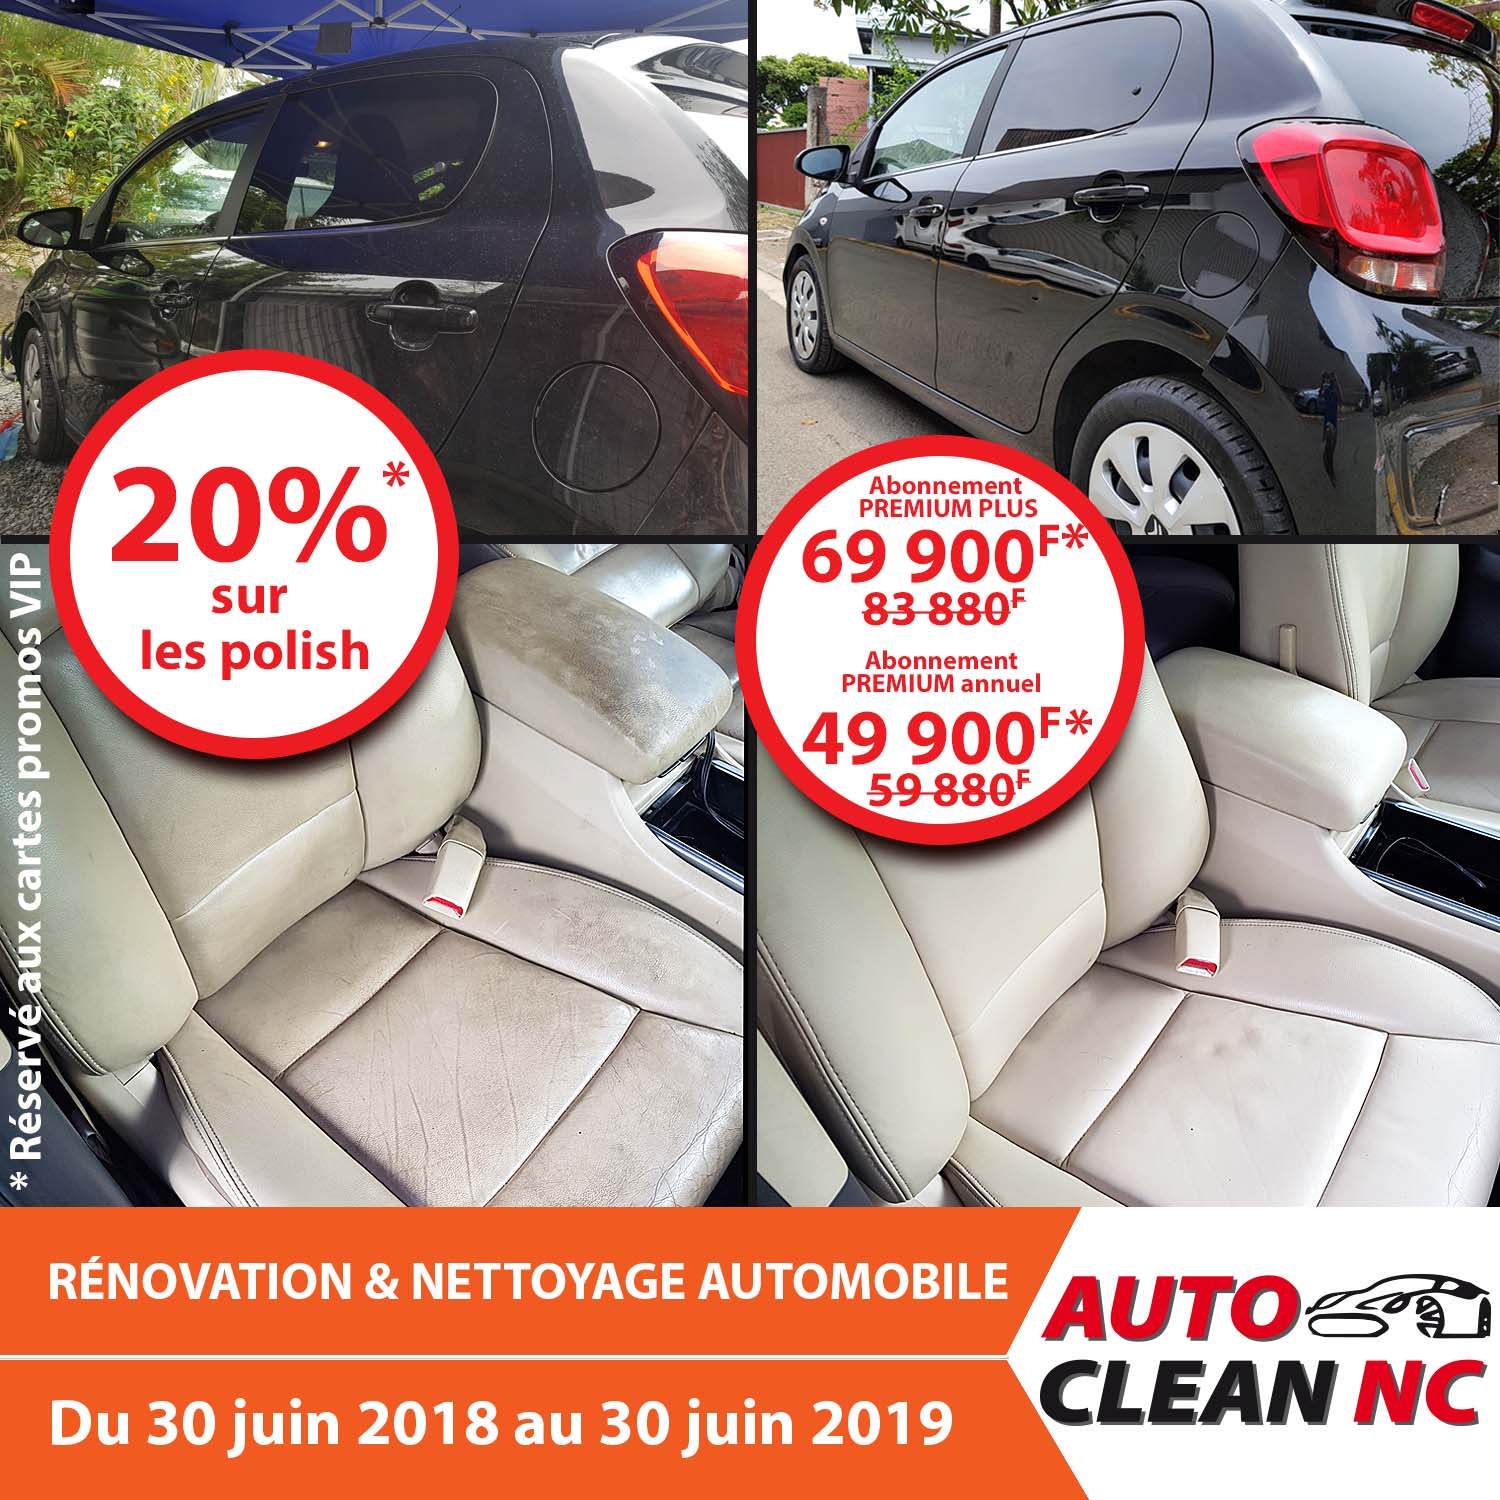 auto-clean-renovation-top-promos-noumea-nouvelle-caledonie.nc